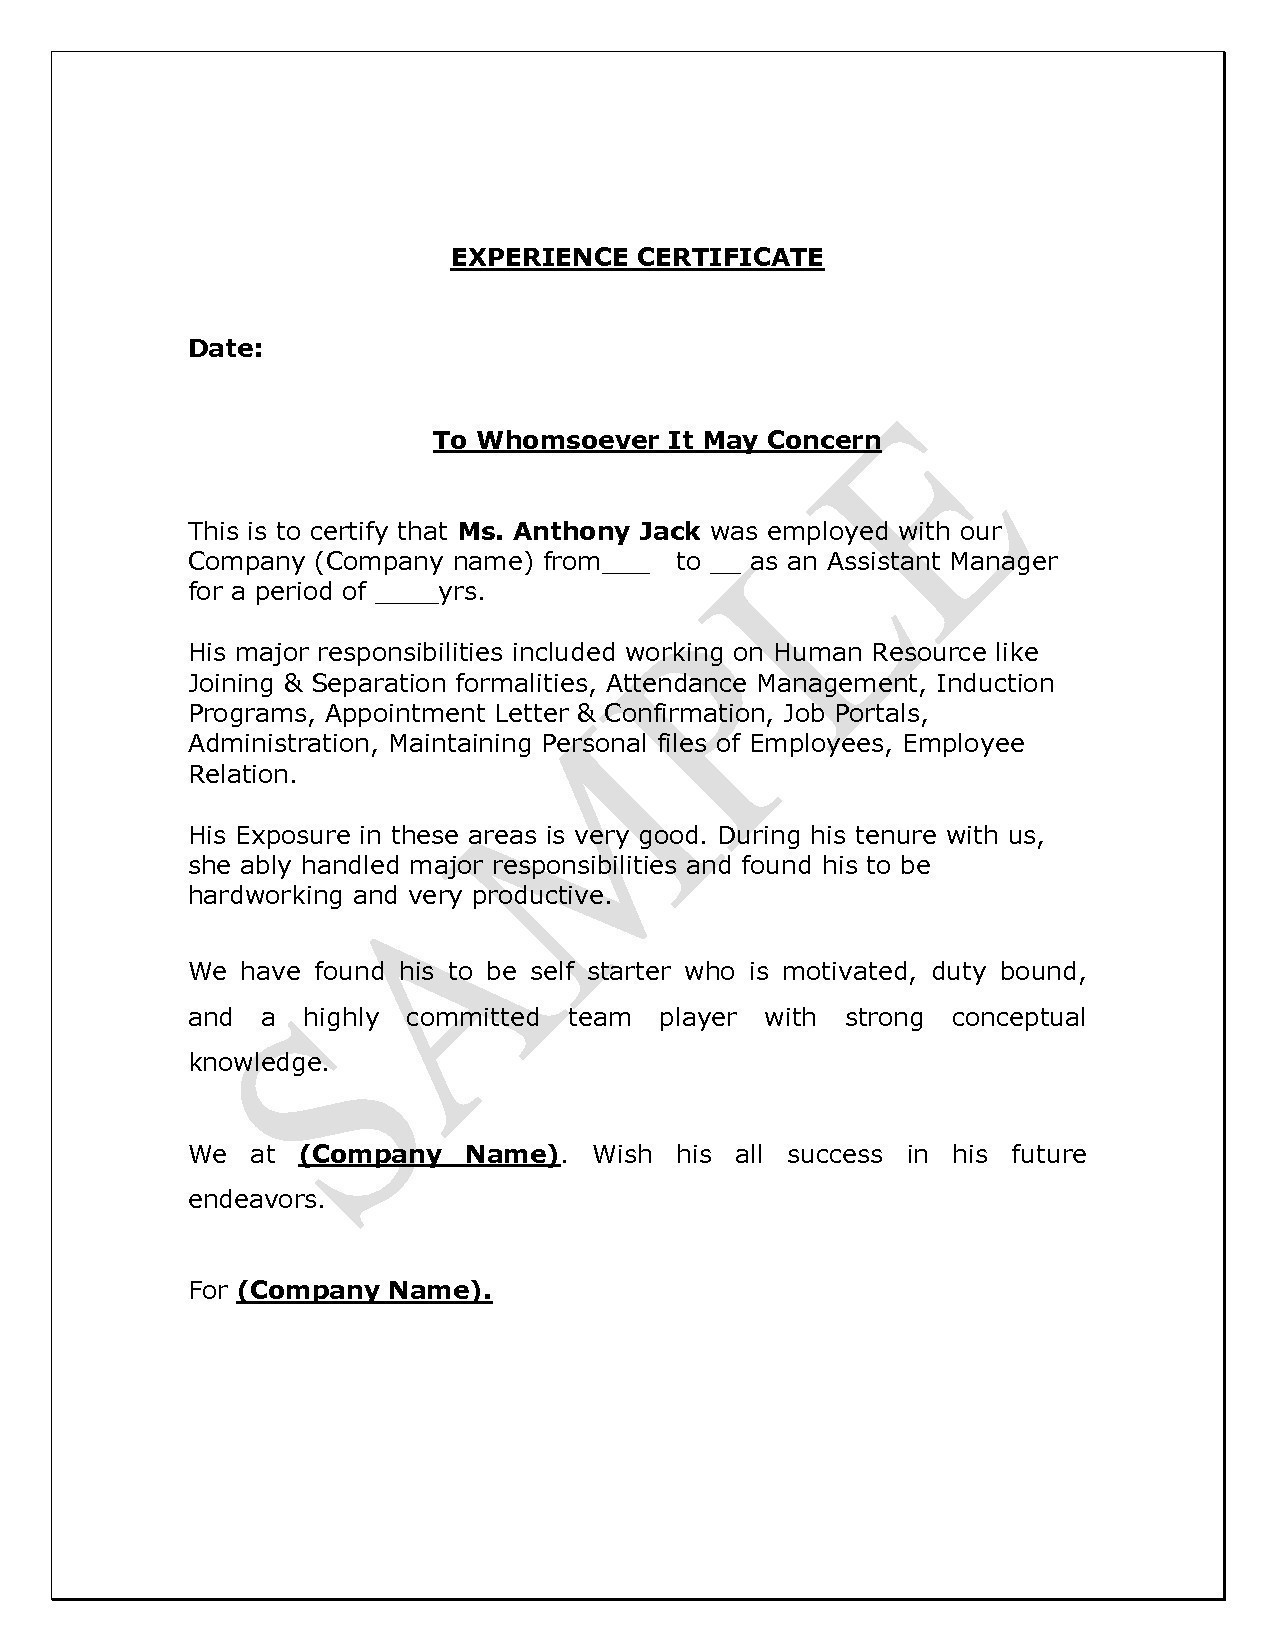 Employment Confirmation Letter Template Doc - Character Certificate format In Doc Best Job Application Letter